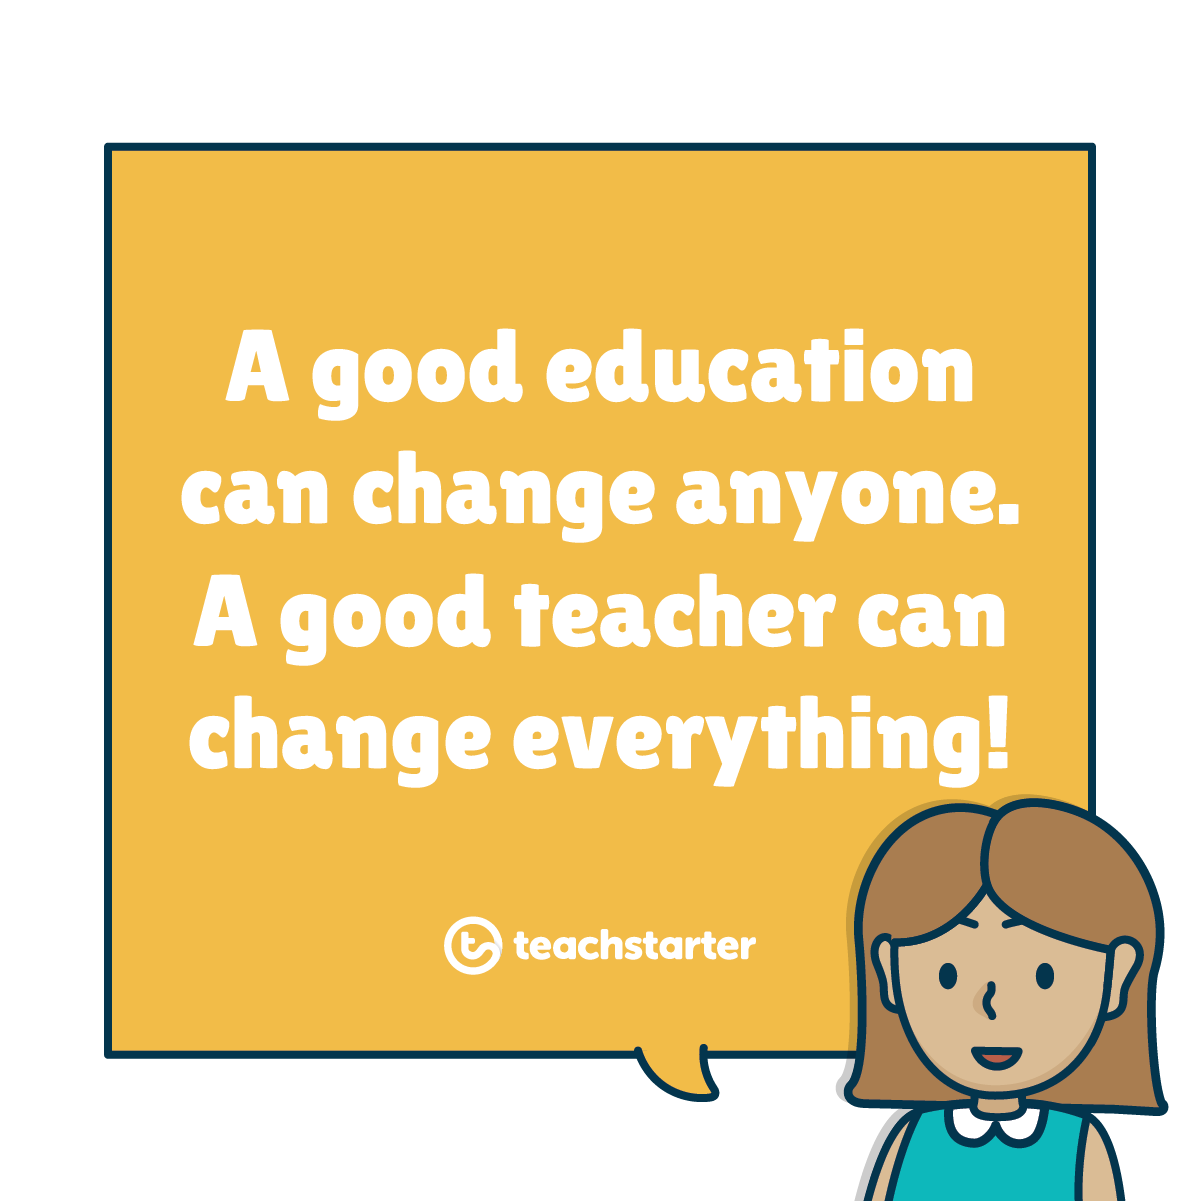 Quotes To Teacher: 10 Inspirational Quotes For Teachers